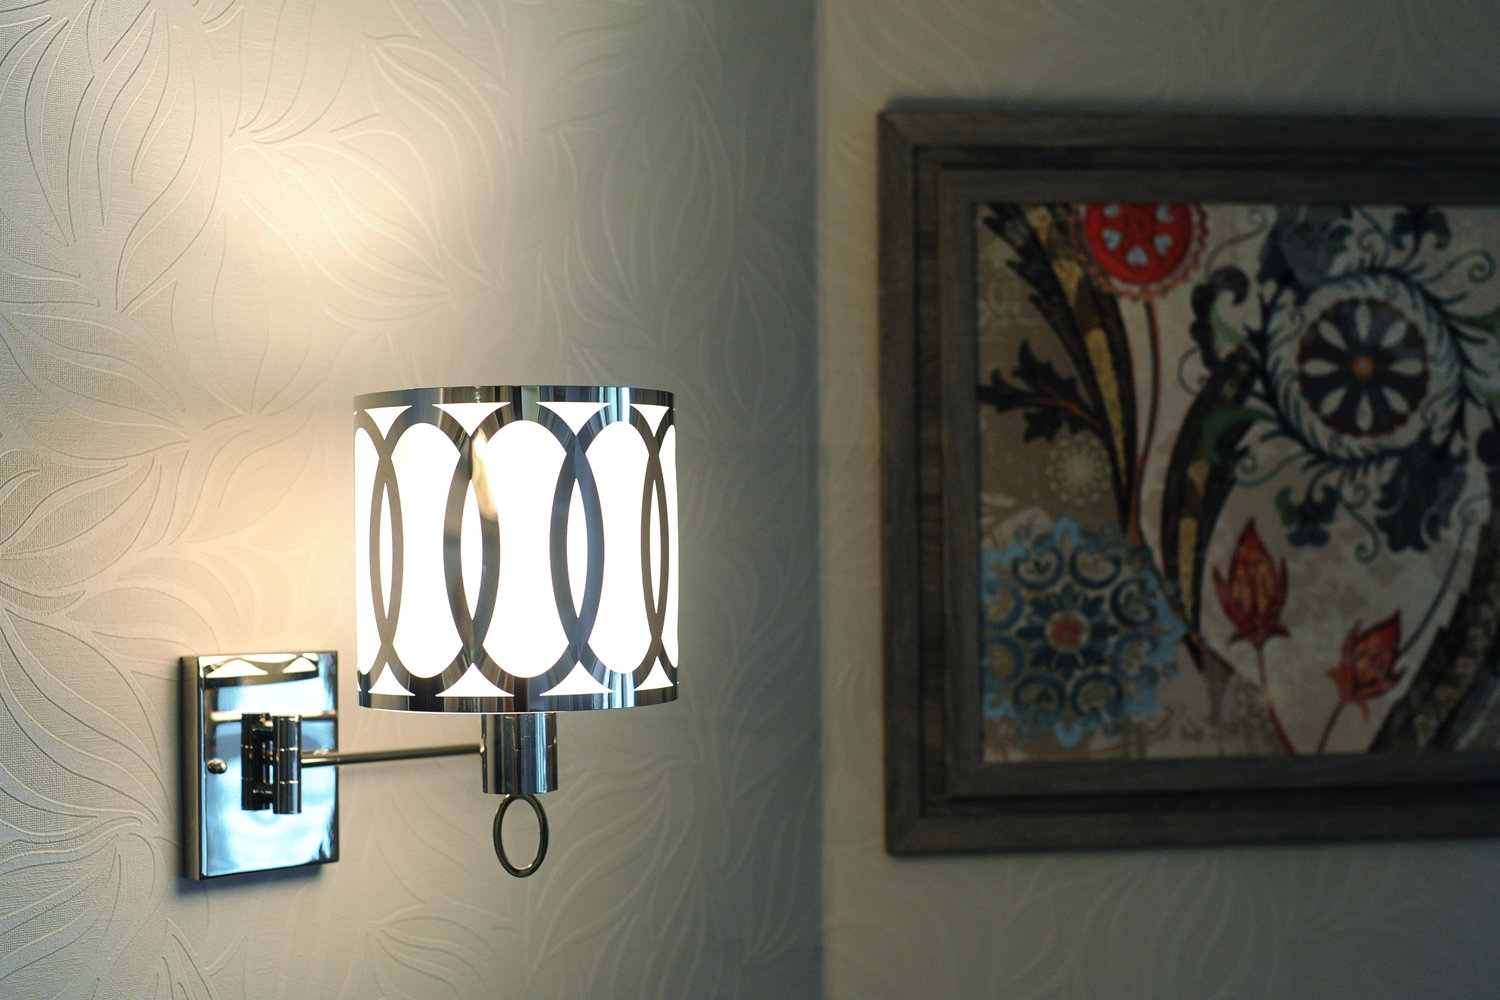 Master Bedroom Design Inspiration Wall Swing Arm Sconce Light Fixture Baltimore Columbia Howard County Maryland April Force Pardoe Interiors Interior Design Ideas